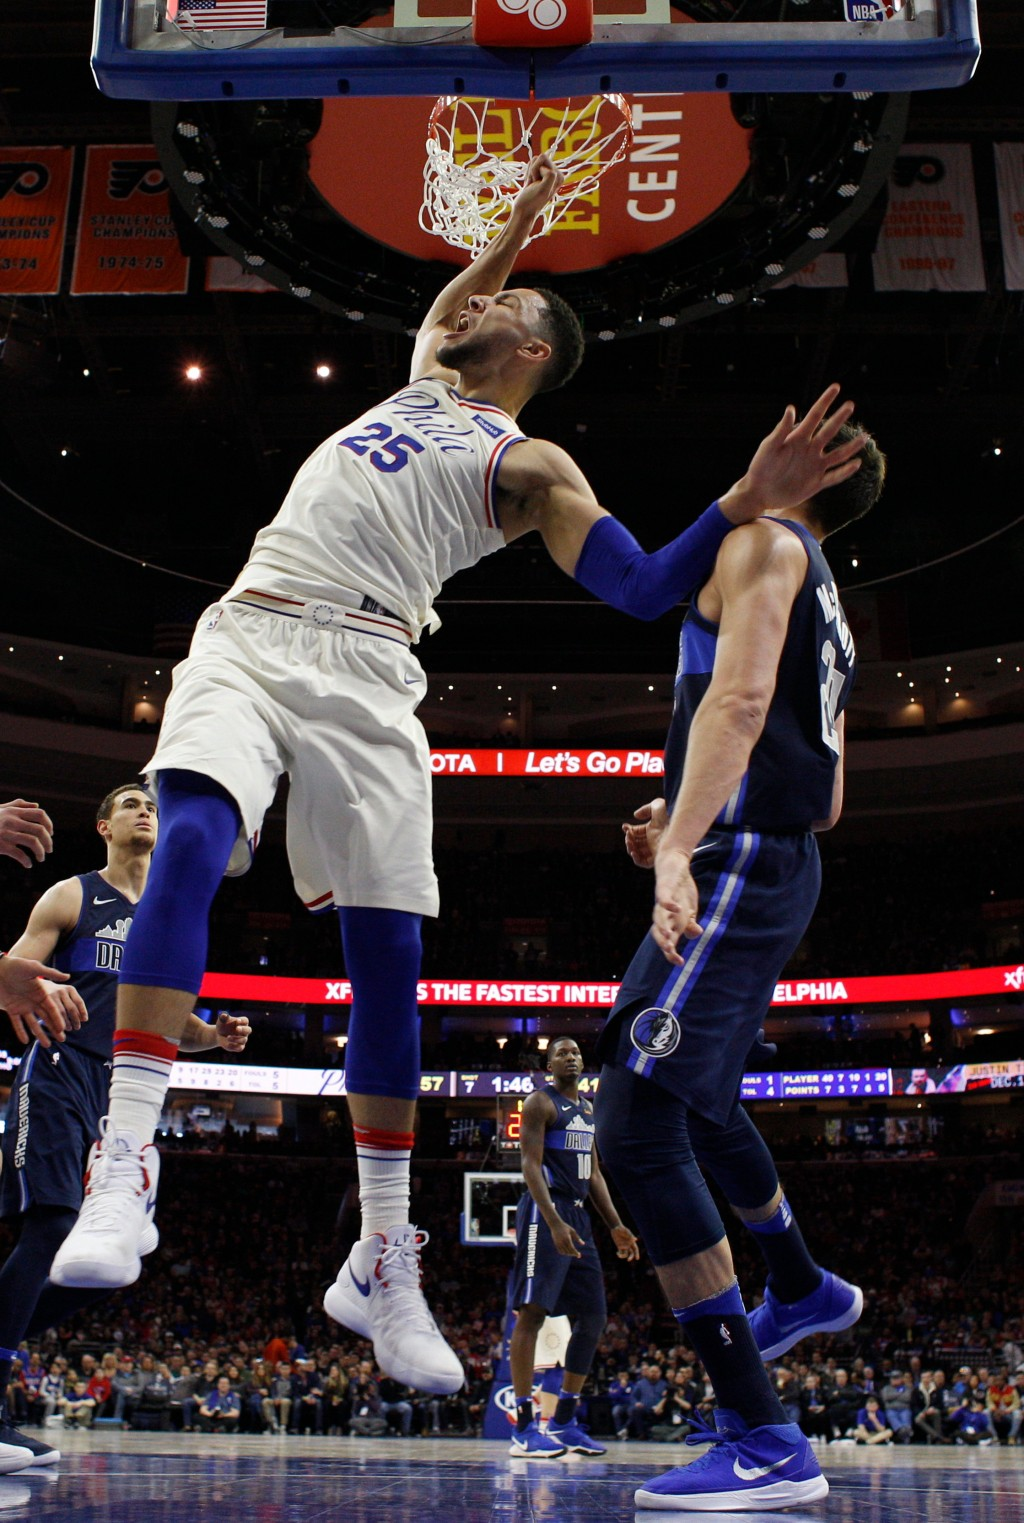 Philadelphia 76ers' Ben Simmons, left, of Australia, reacts after his dunk against Dallas Mavericks' Doug McDermott, right, during the first half of a...